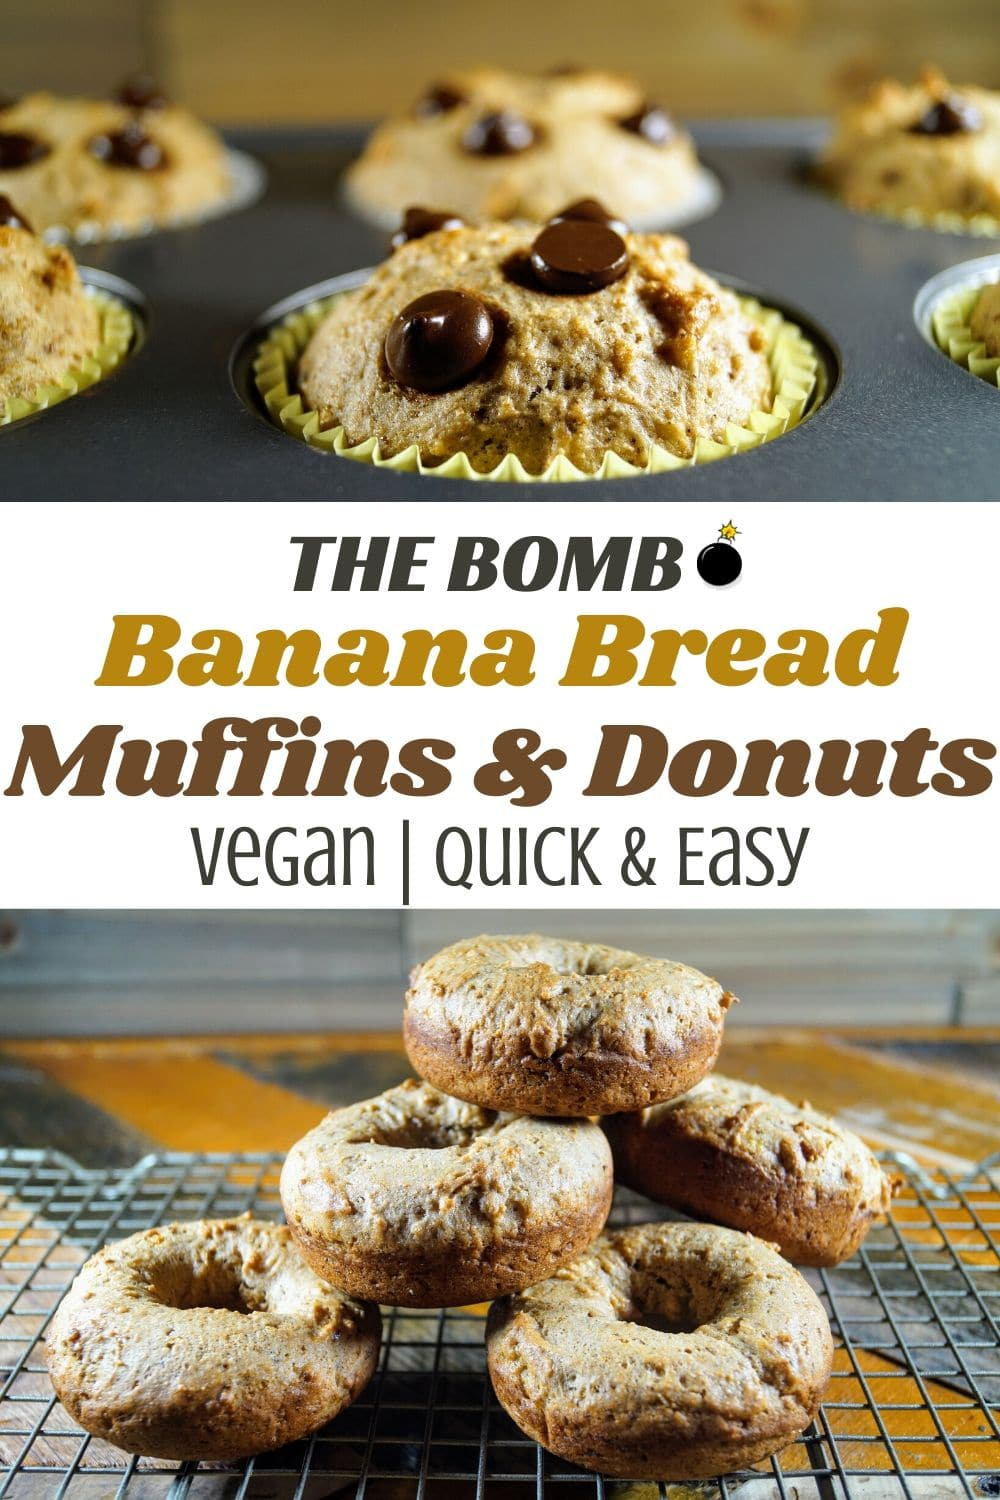 The Bomb Vegan Banana Bread Muffins and Donuts for Pinterest